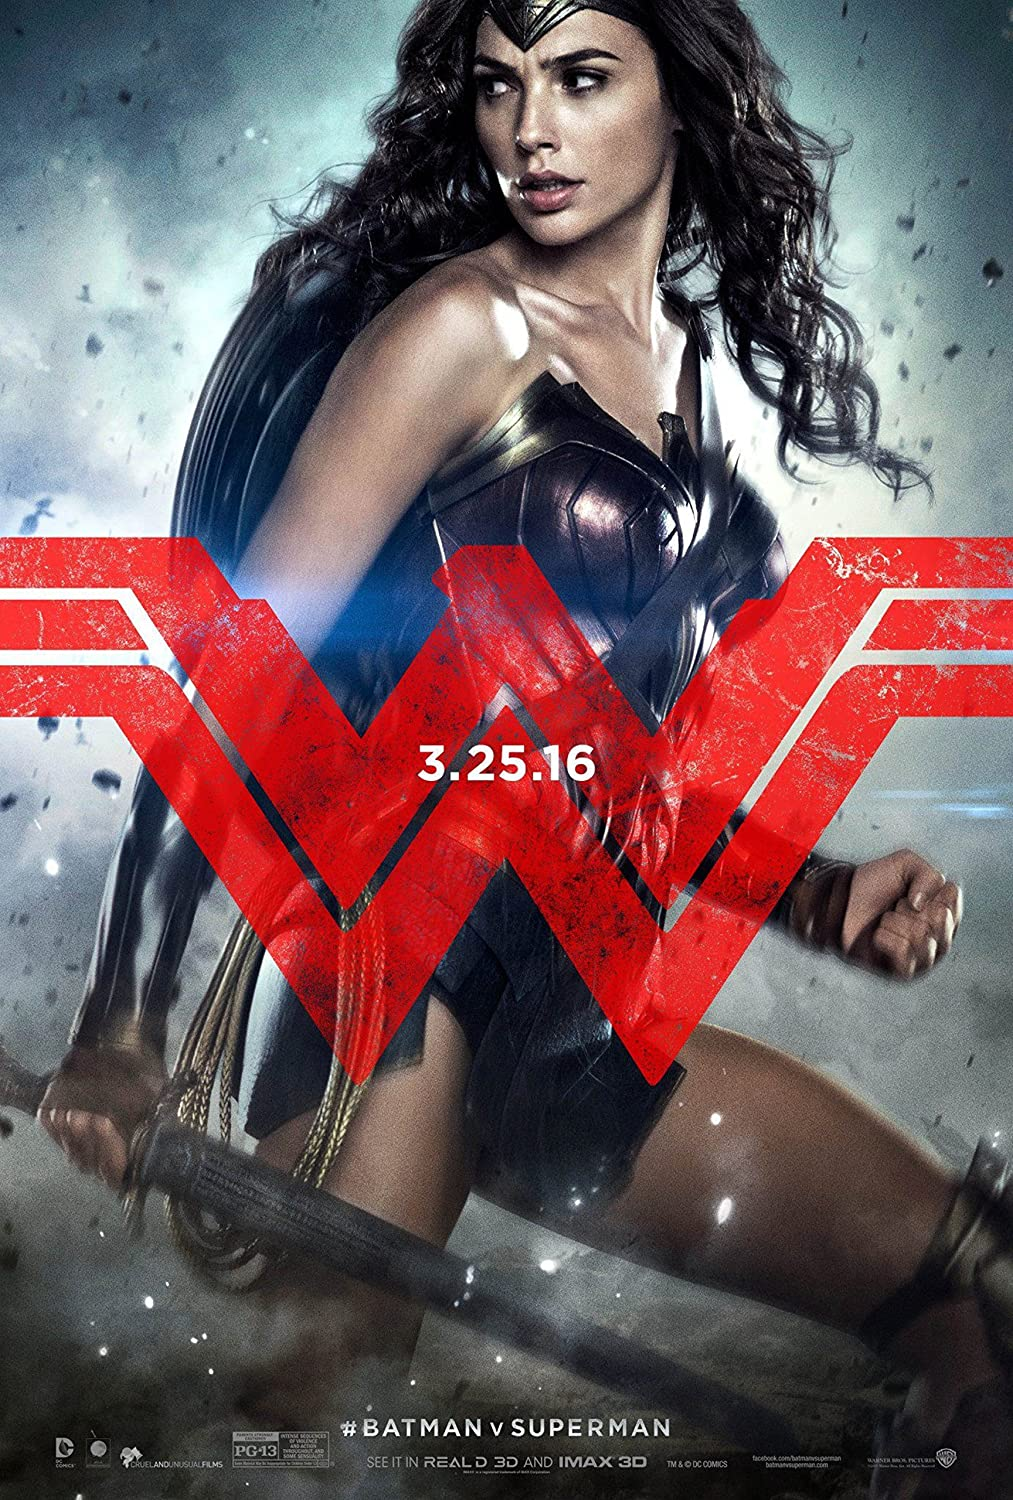 Batman Vs Superman: Dawn Of Justice - Wonder Woman Poster